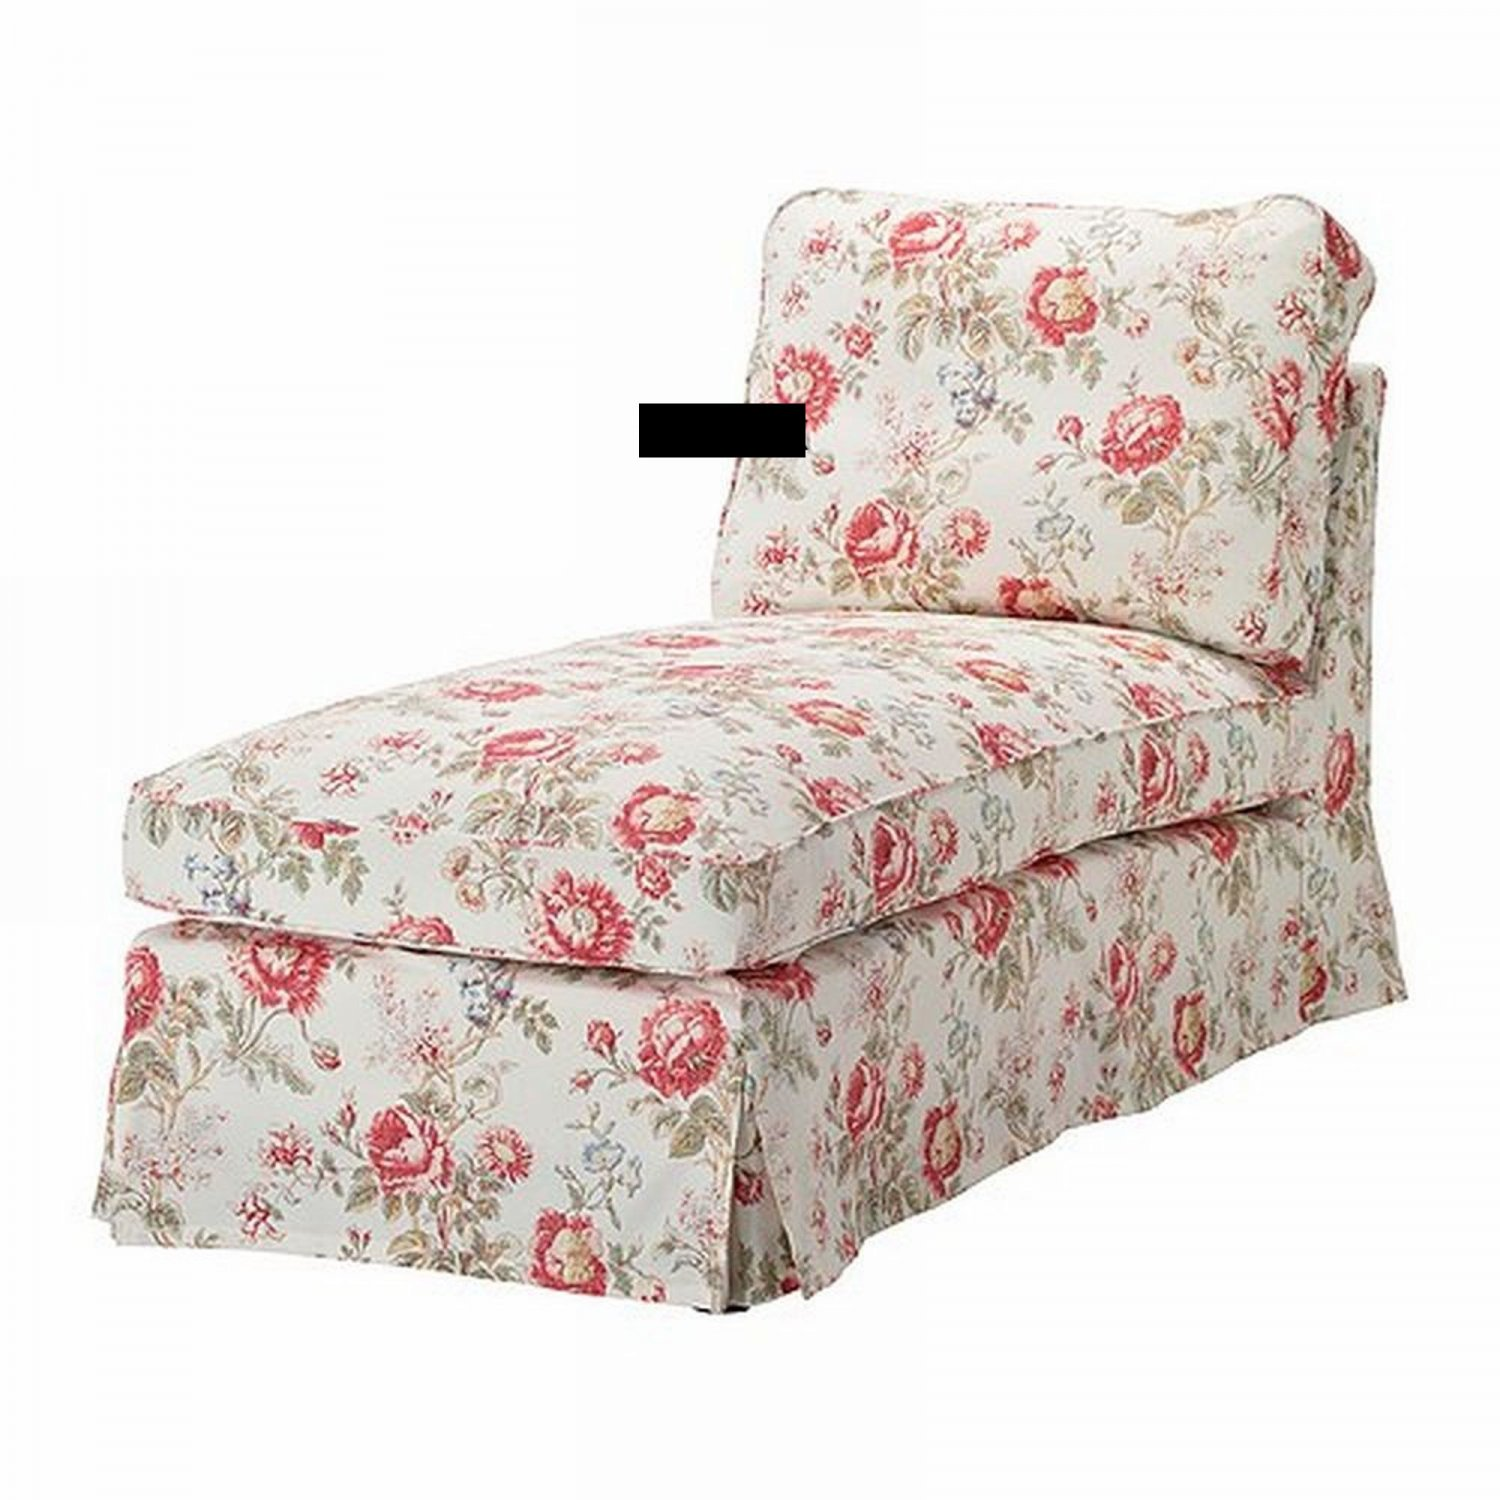 ikea ektorp chaise longue slipcover cover byvik multi floral rose peony. Black Bedroom Furniture Sets. Home Design Ideas